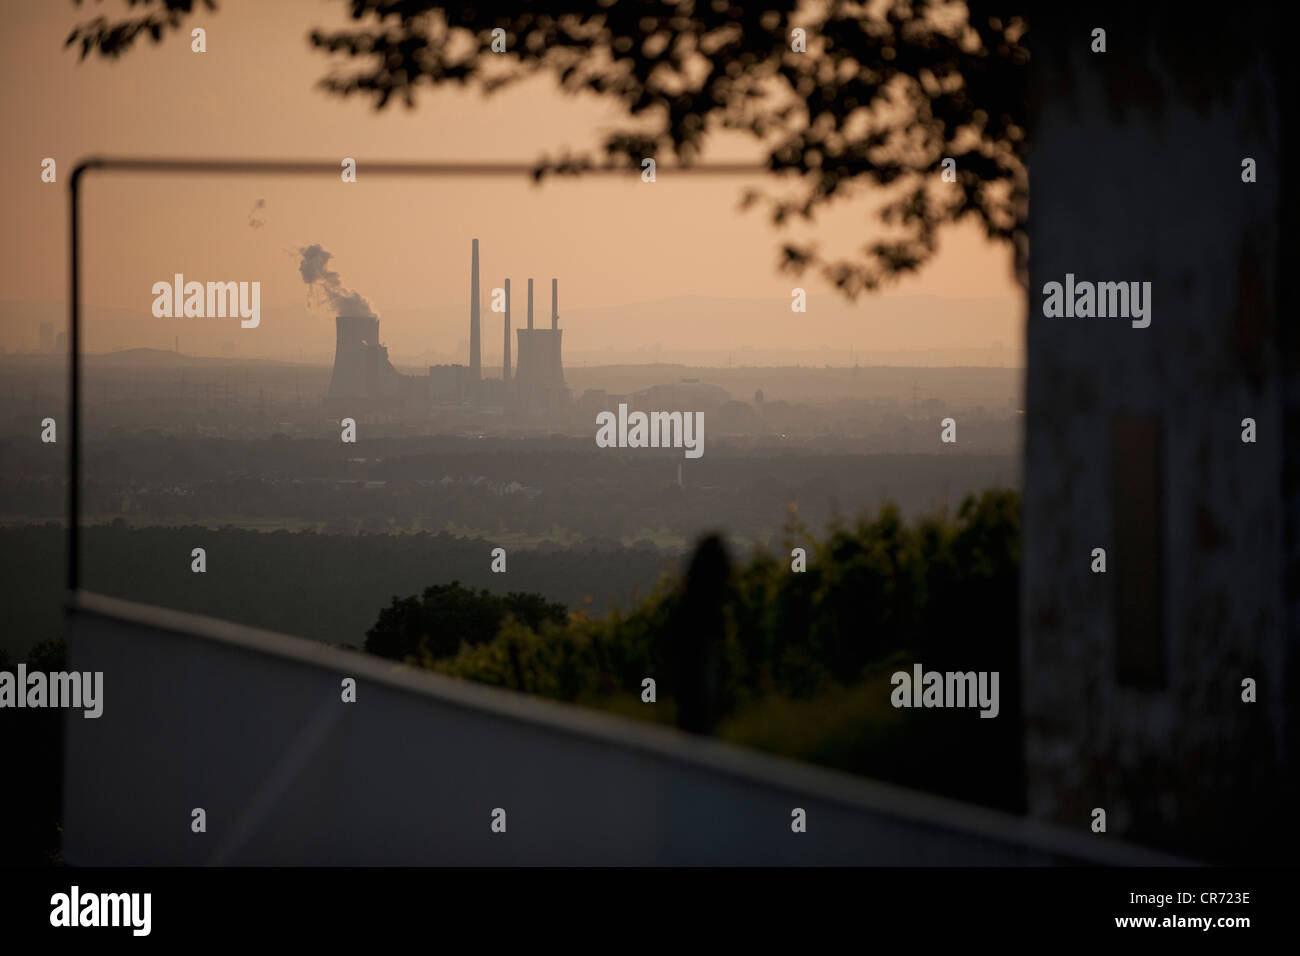 Germany, View of power plant station at sunset - Stock Image